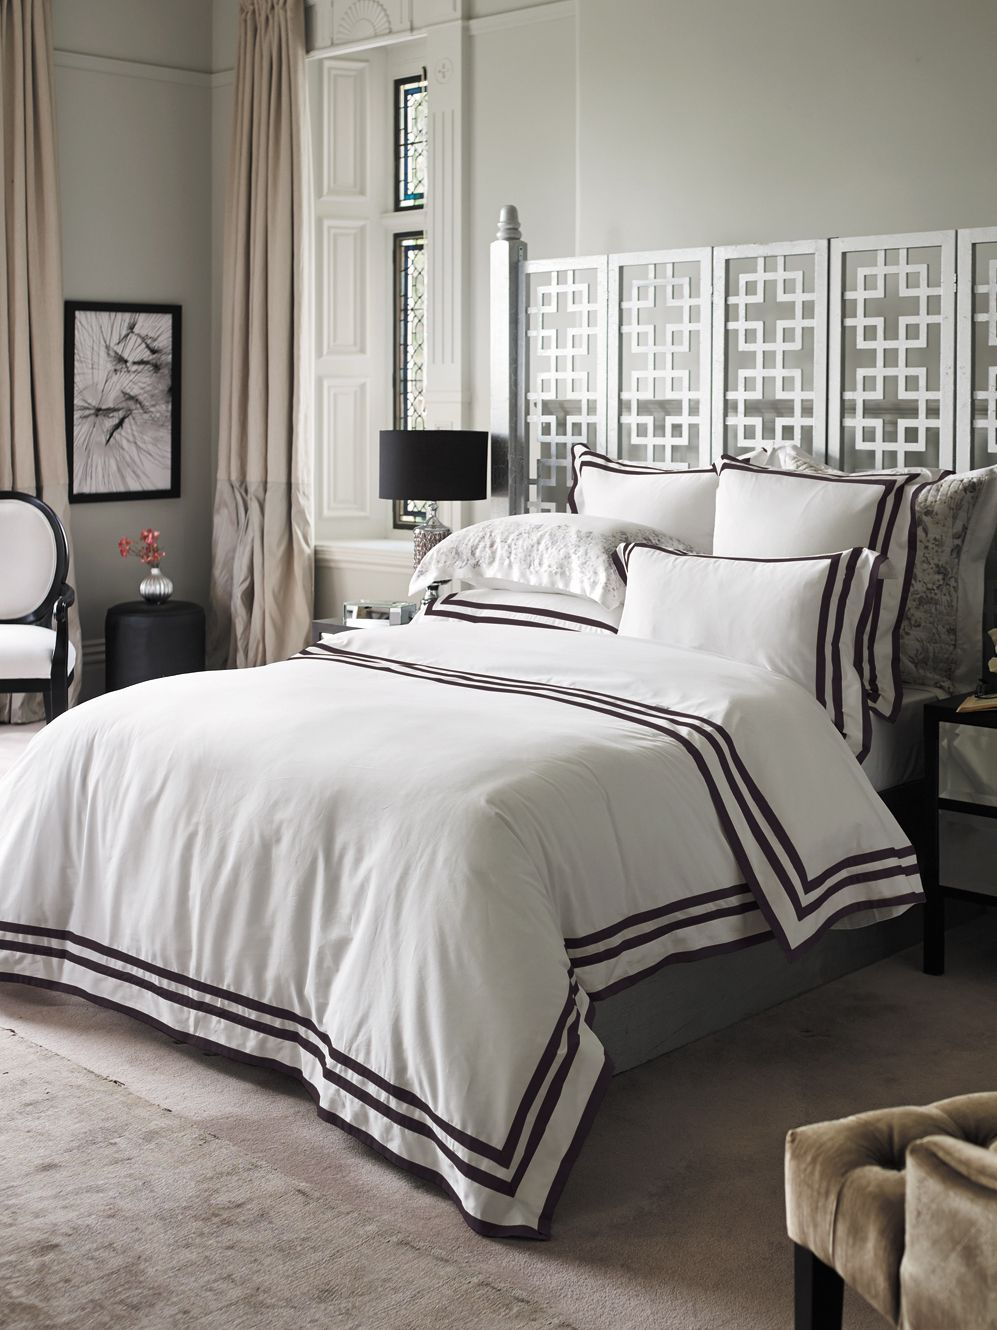 Holroyd ebony double duvet cover timeless look